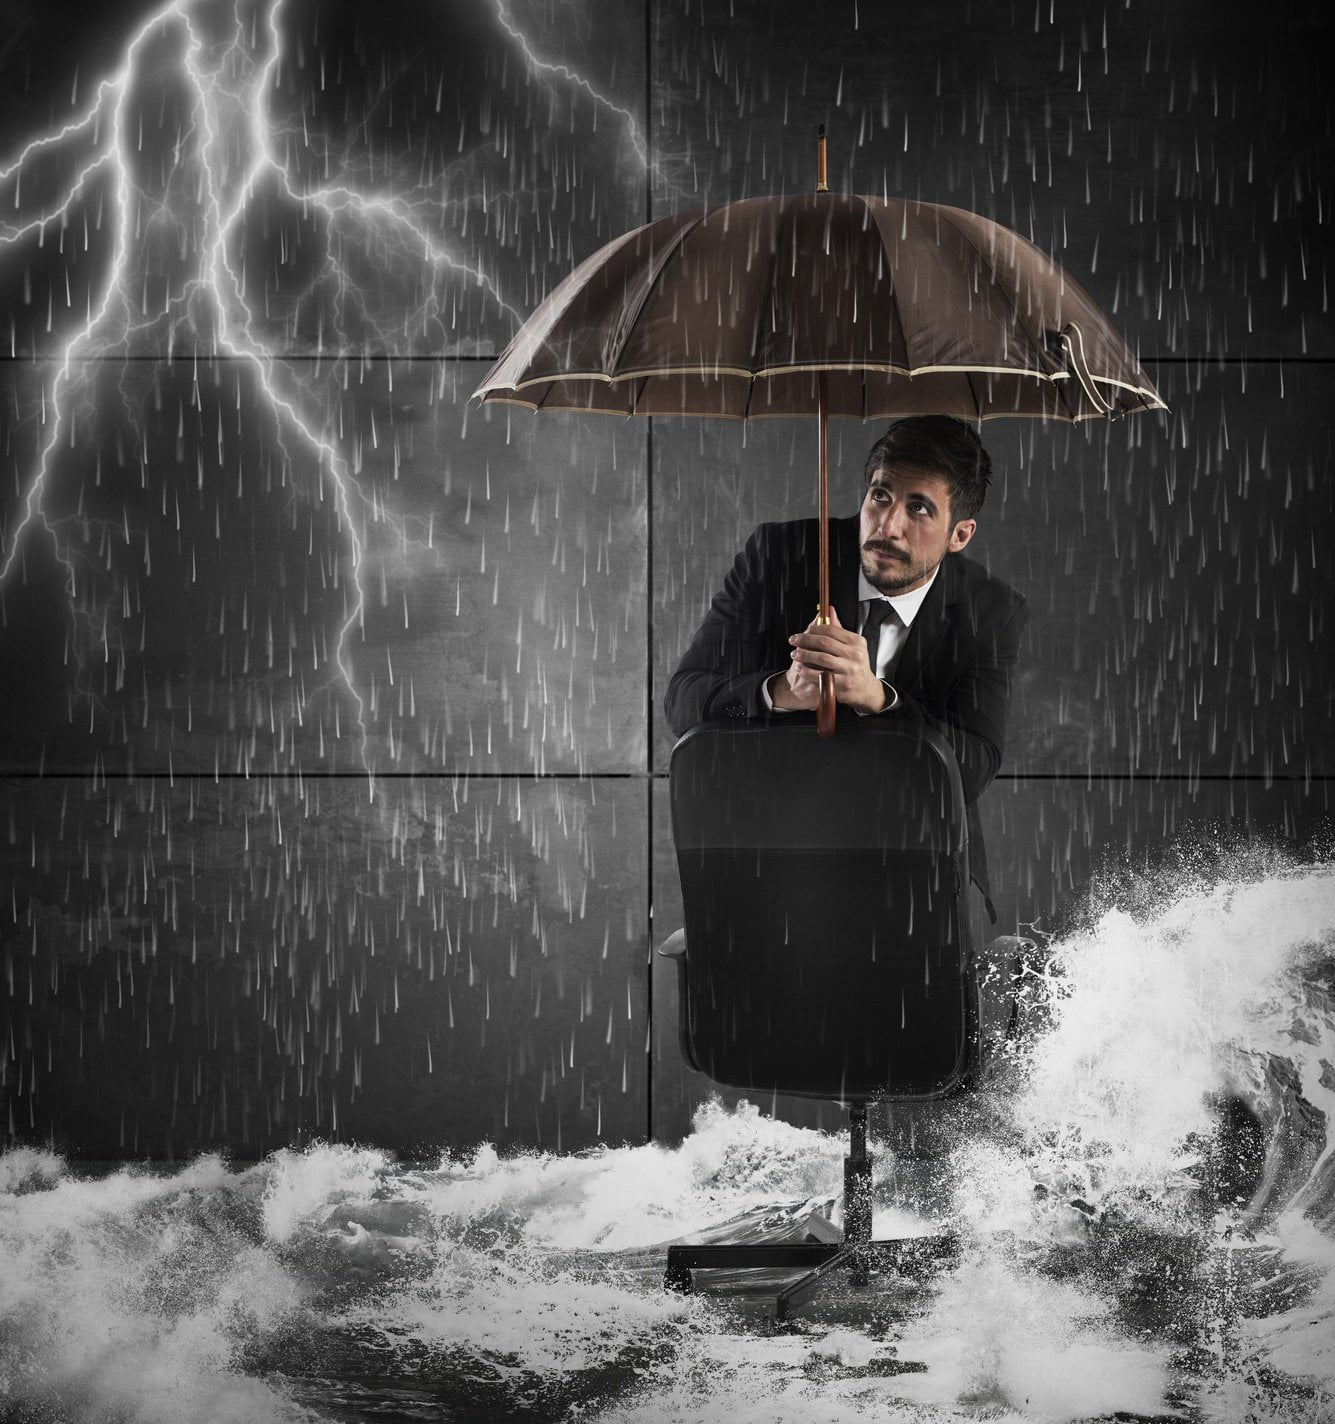 Could Your Business Survive the Next Hurricane Harvey?